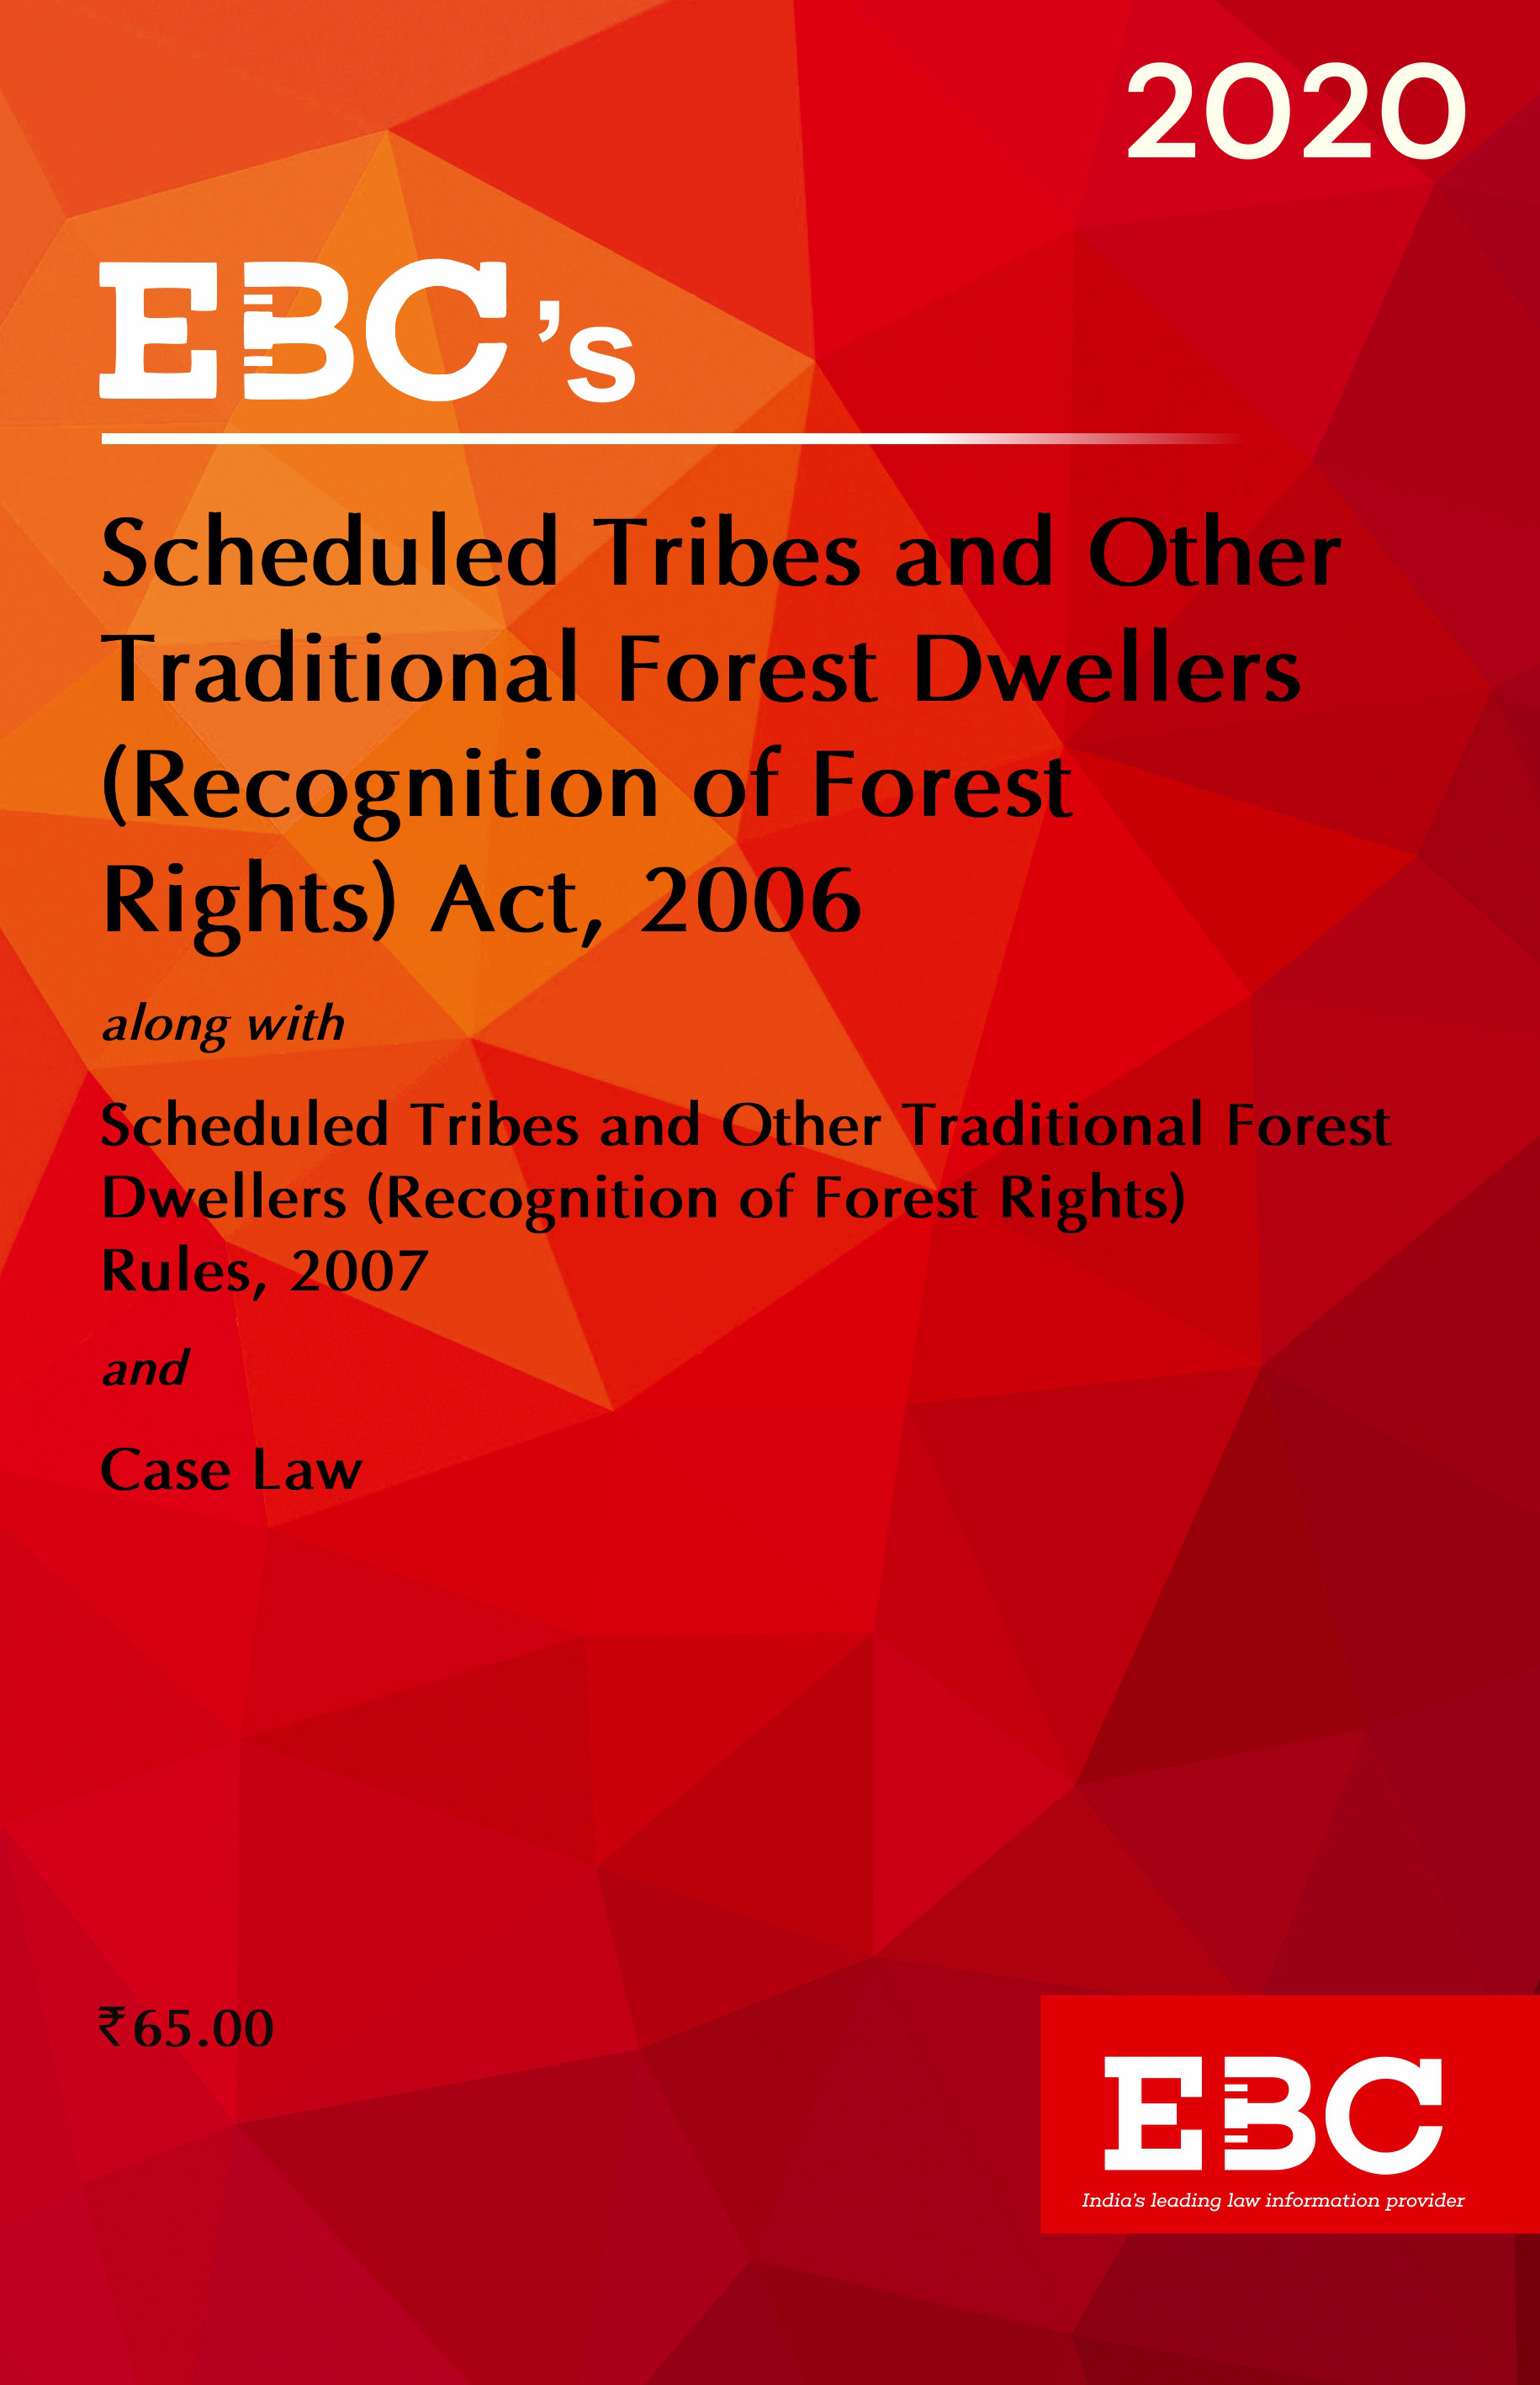 Scheduled Tribes and Other Traditional Forest Dwellers (Recognition of Forest Rights) Act, 2006